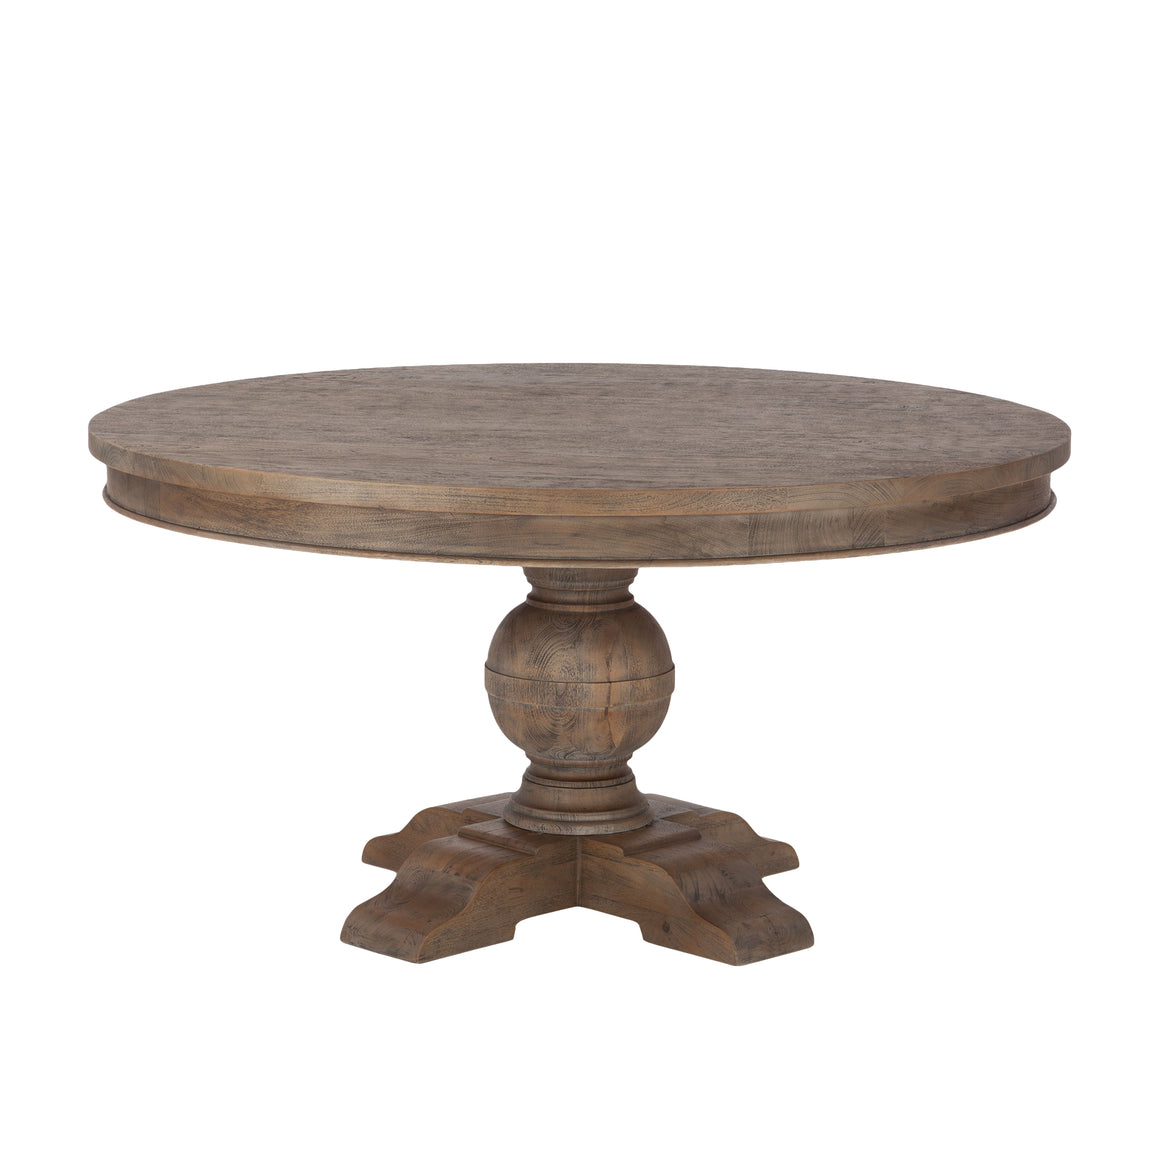 Chatham Downs Round Dining Table